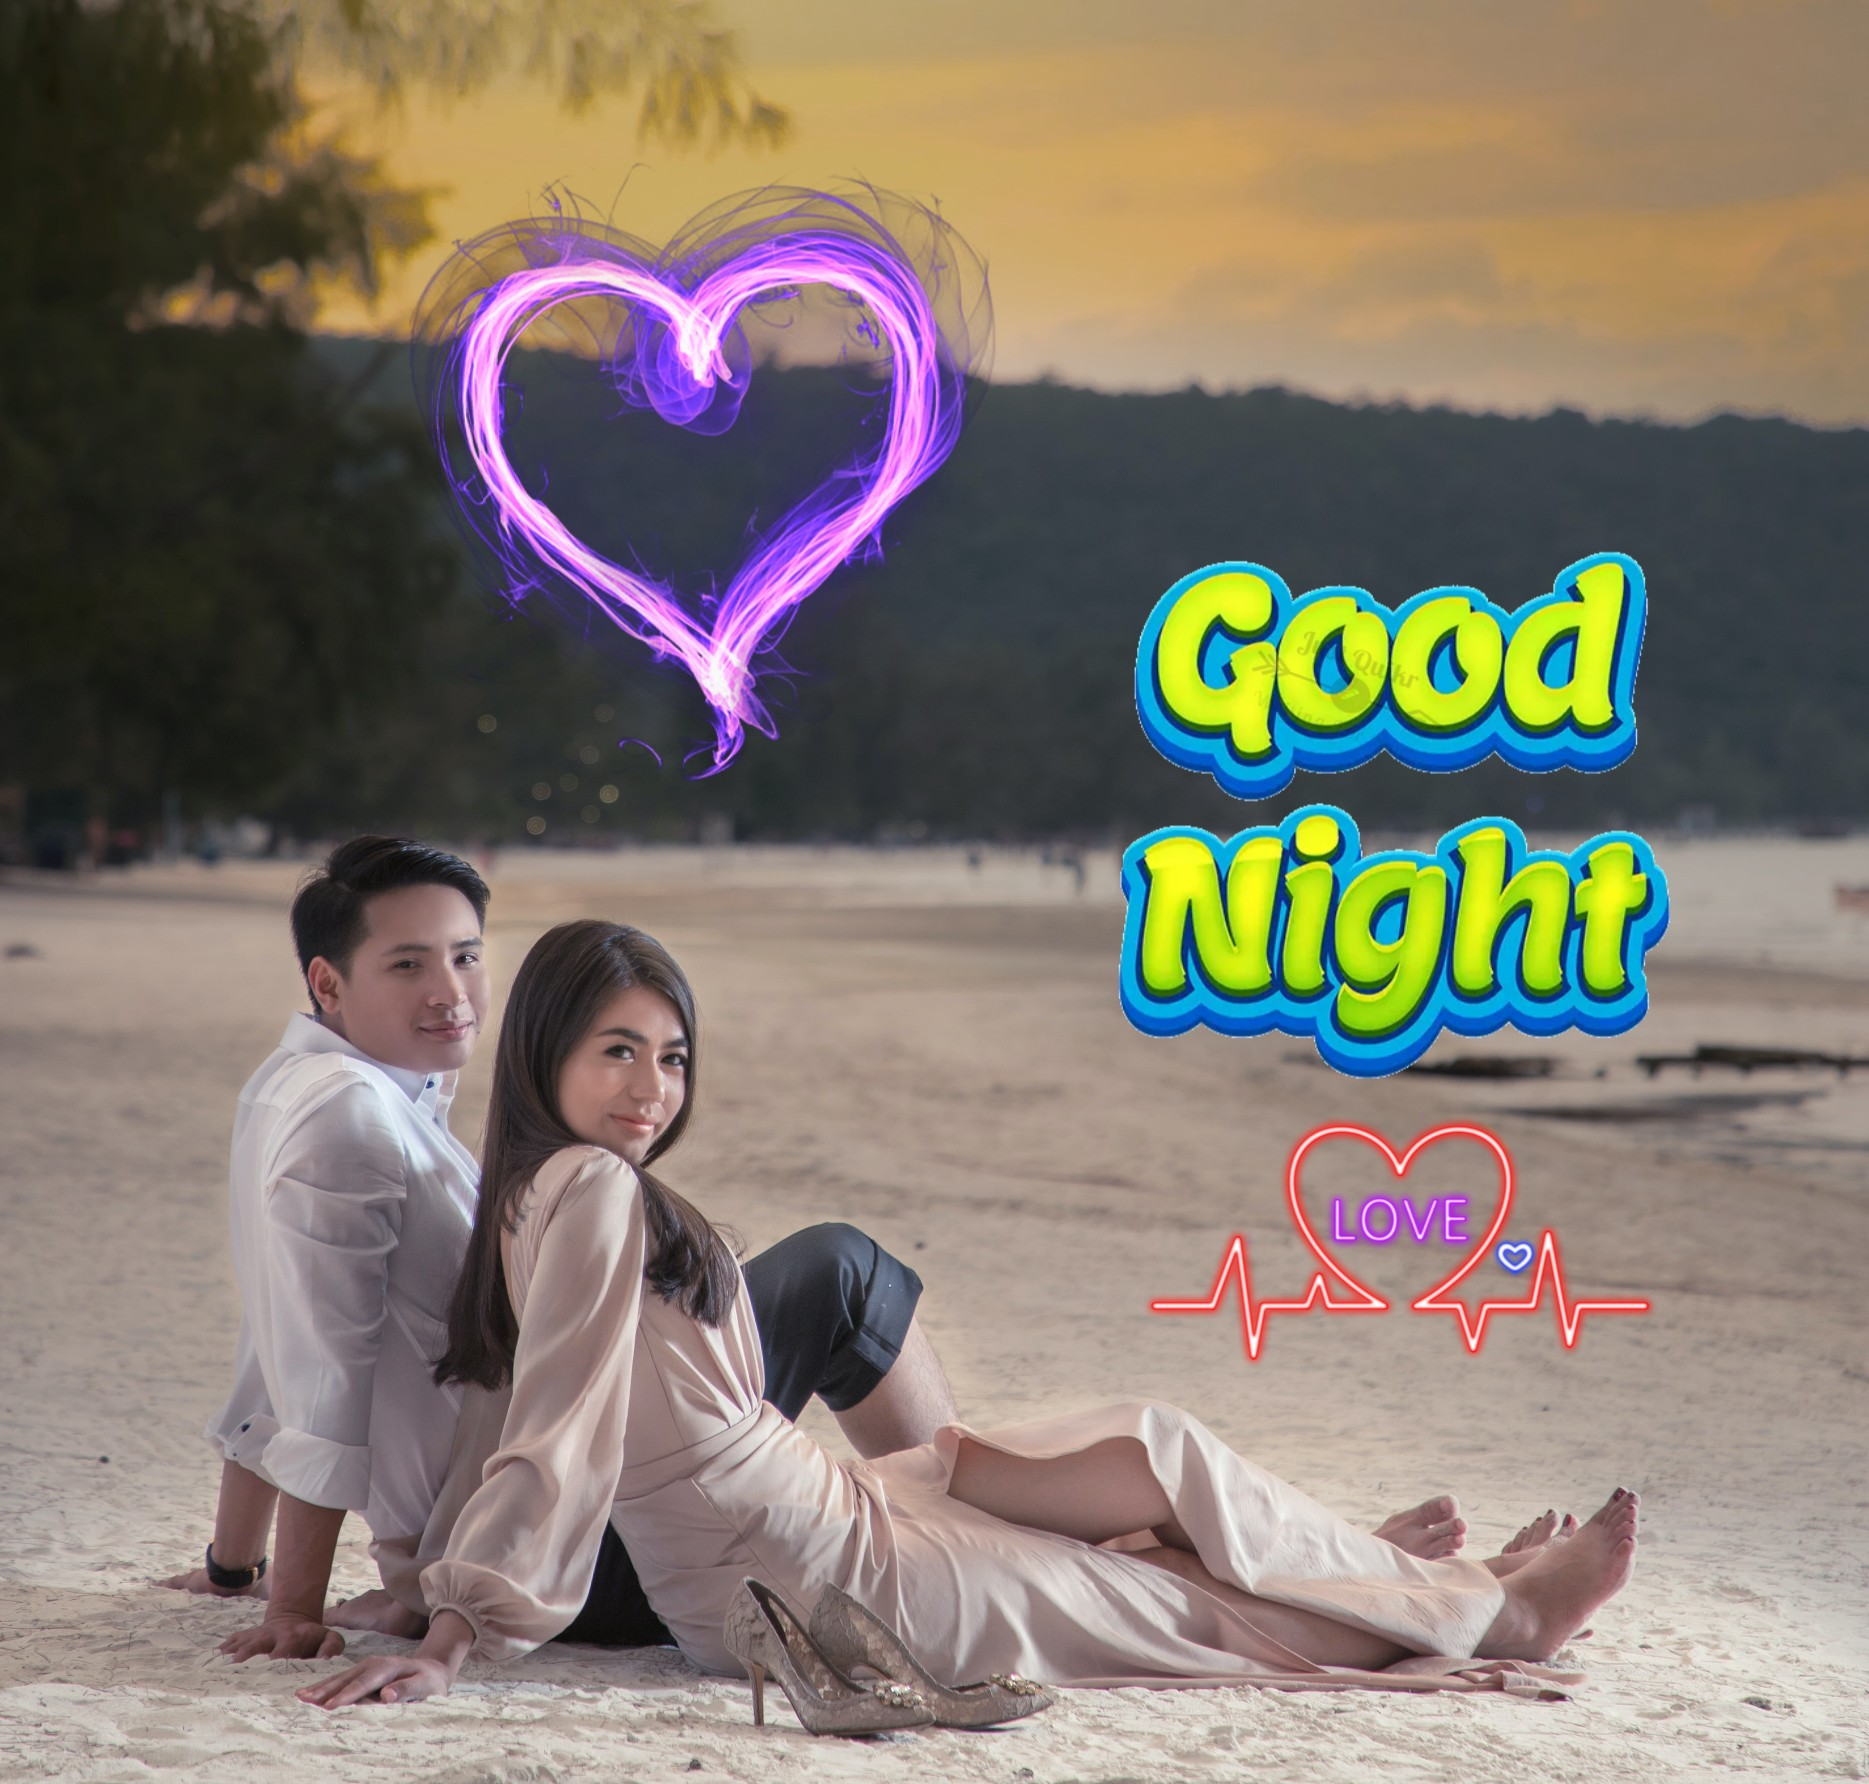 Good Night HD Pics Images For Love Couple